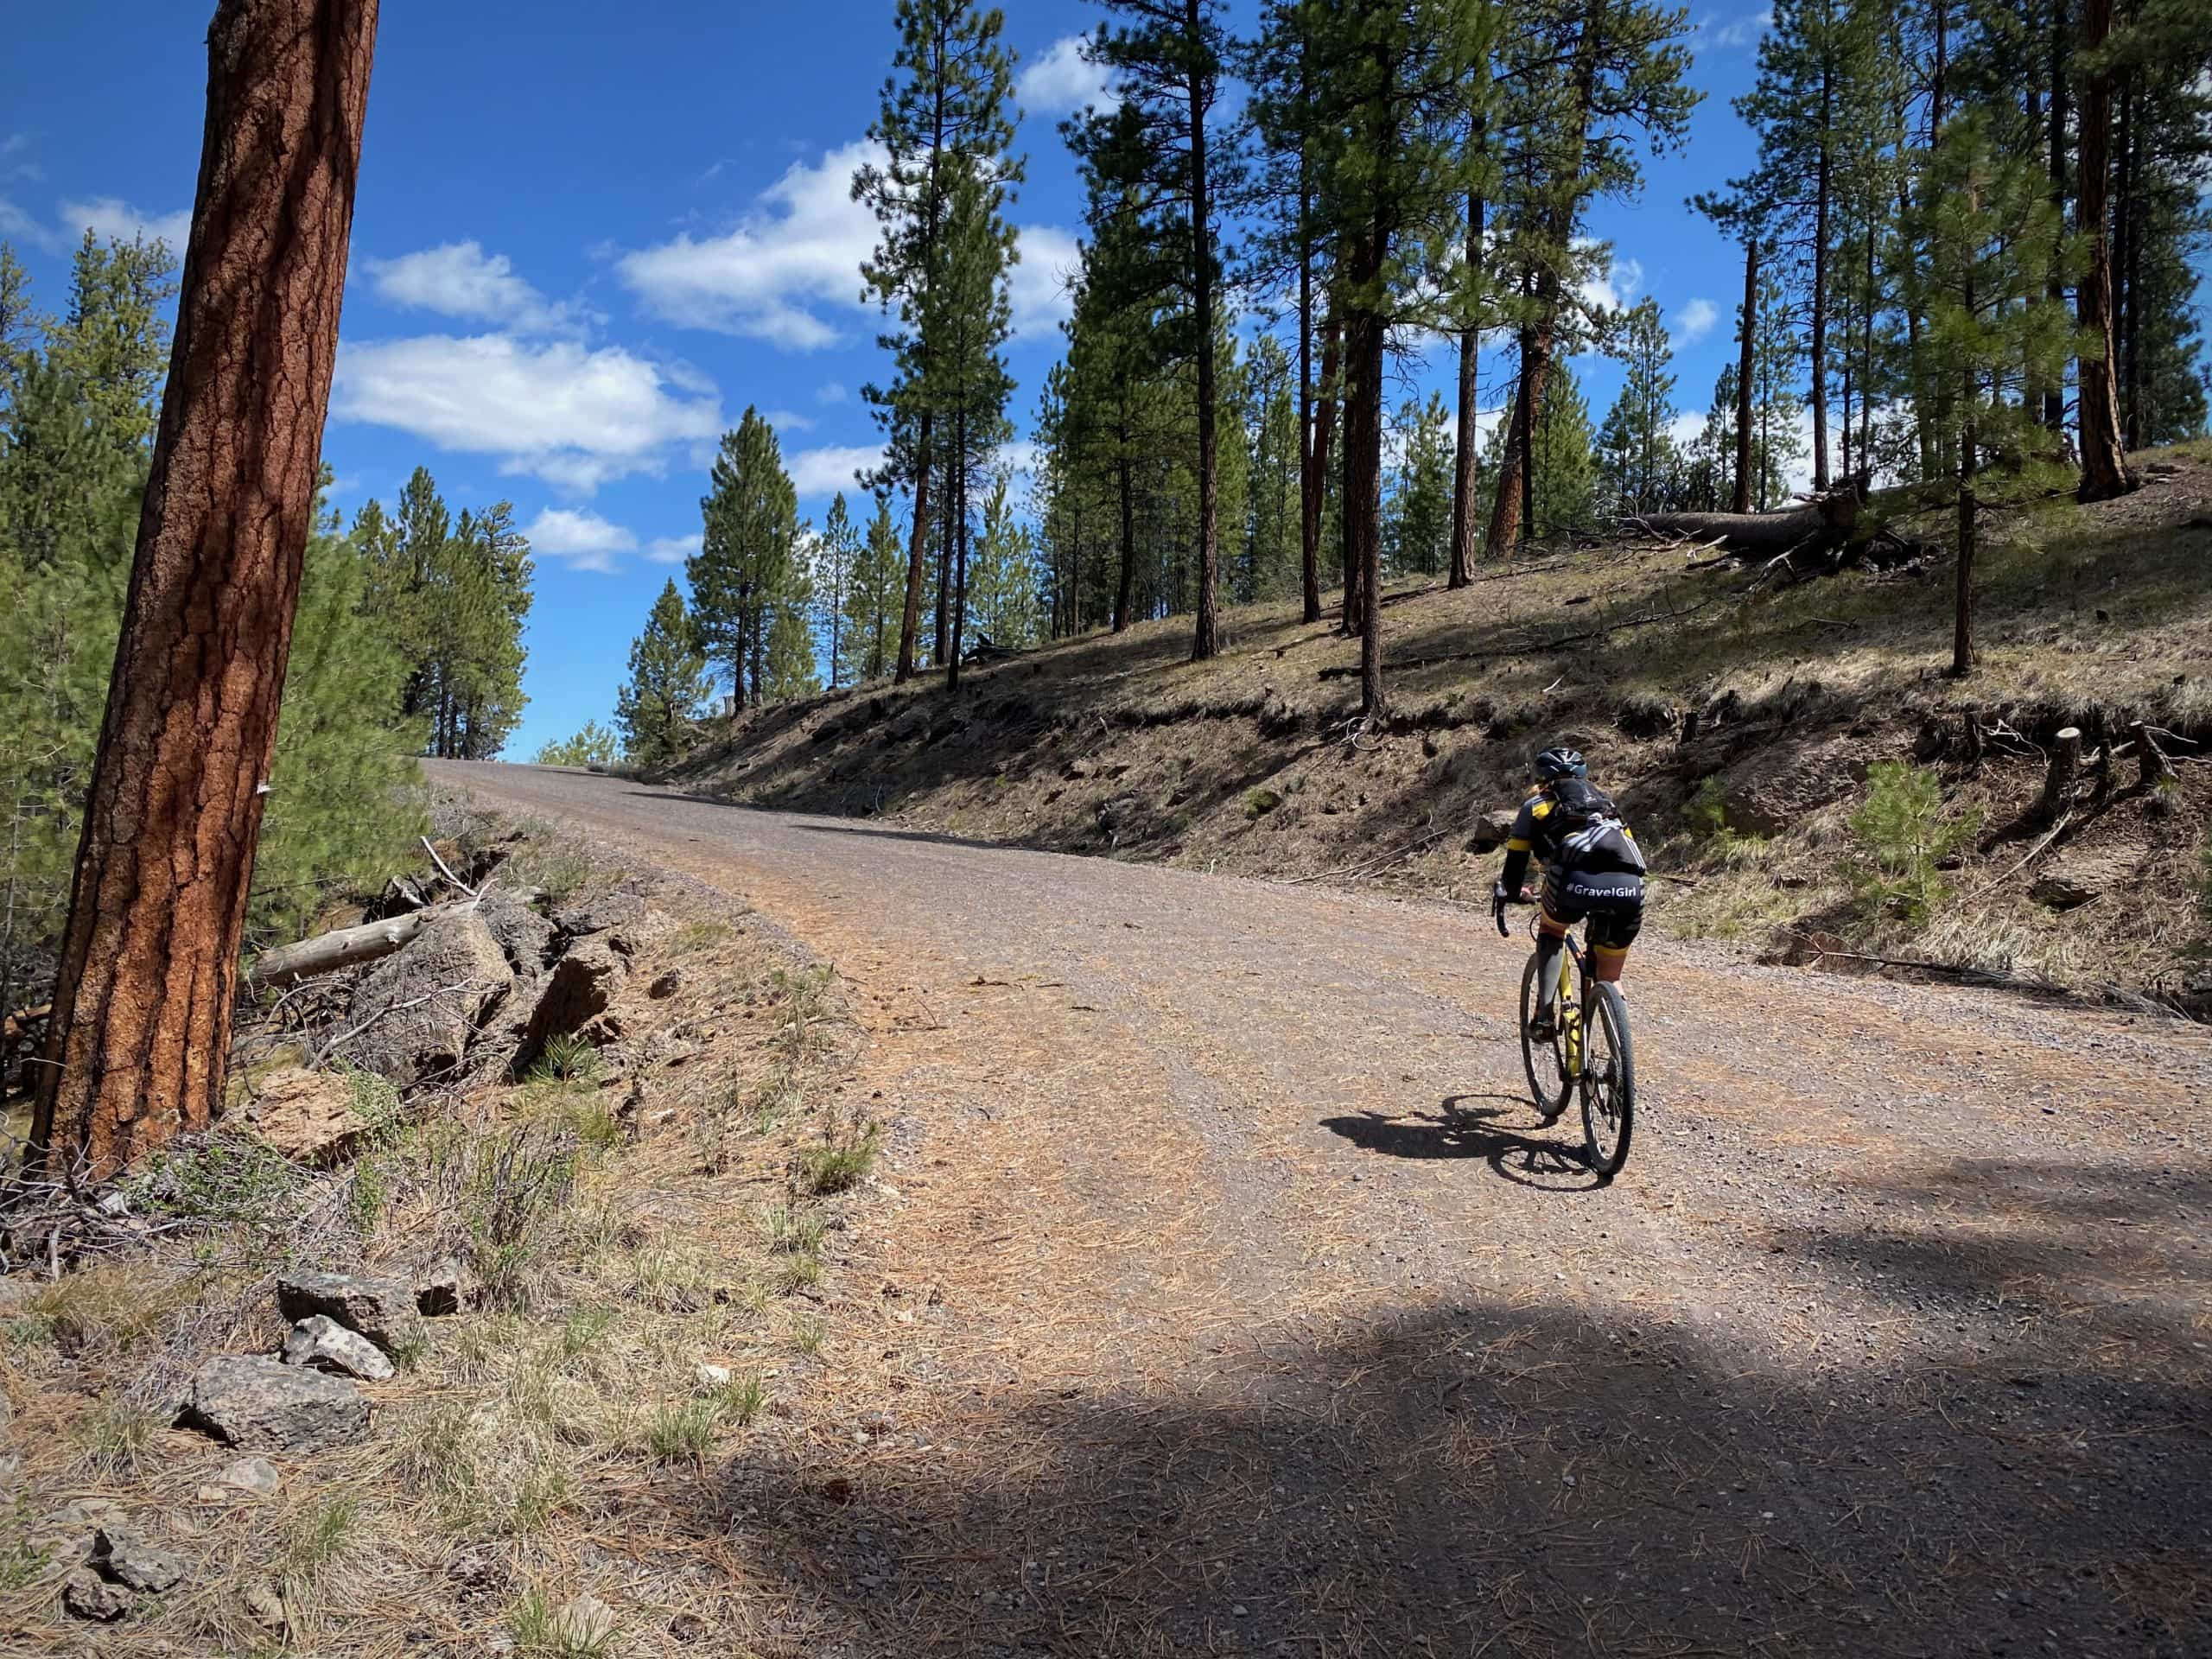 Woman gravel cyclist on forest service road NF in the Ochoco National forest.